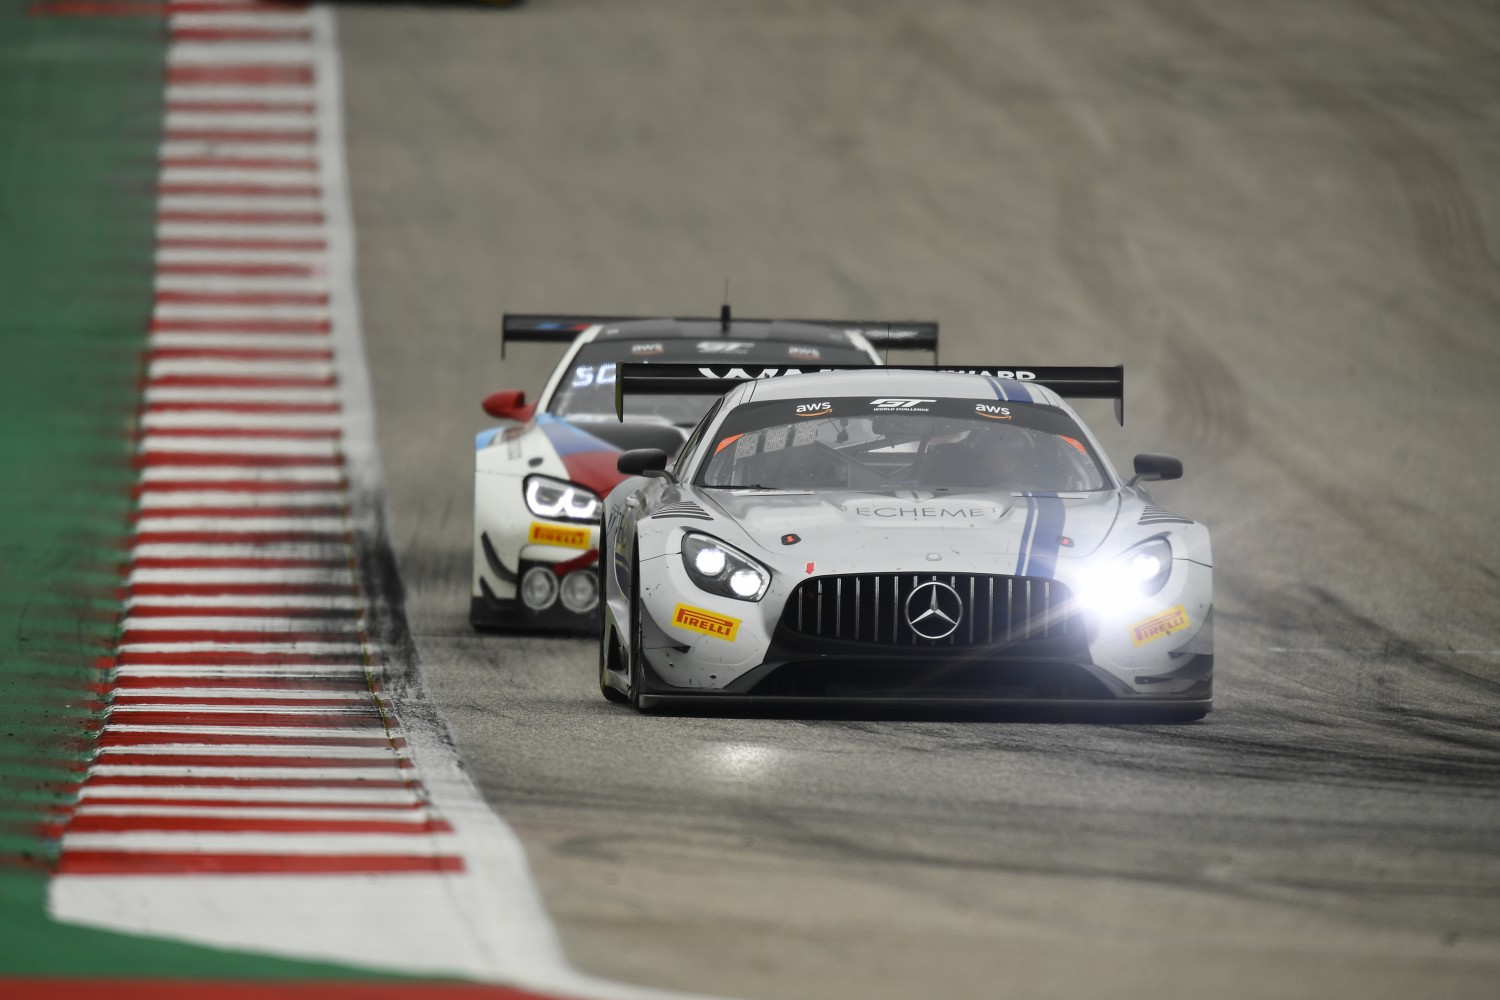 #33 GT3 Pro-Am, Winward Racing, Bryce Ward, Russell Ward, Mercedes-AMG GT3, 2020 SRO Motorsports Group - Circuit of the Americas, Austin TX  | SRO Motorsports Group